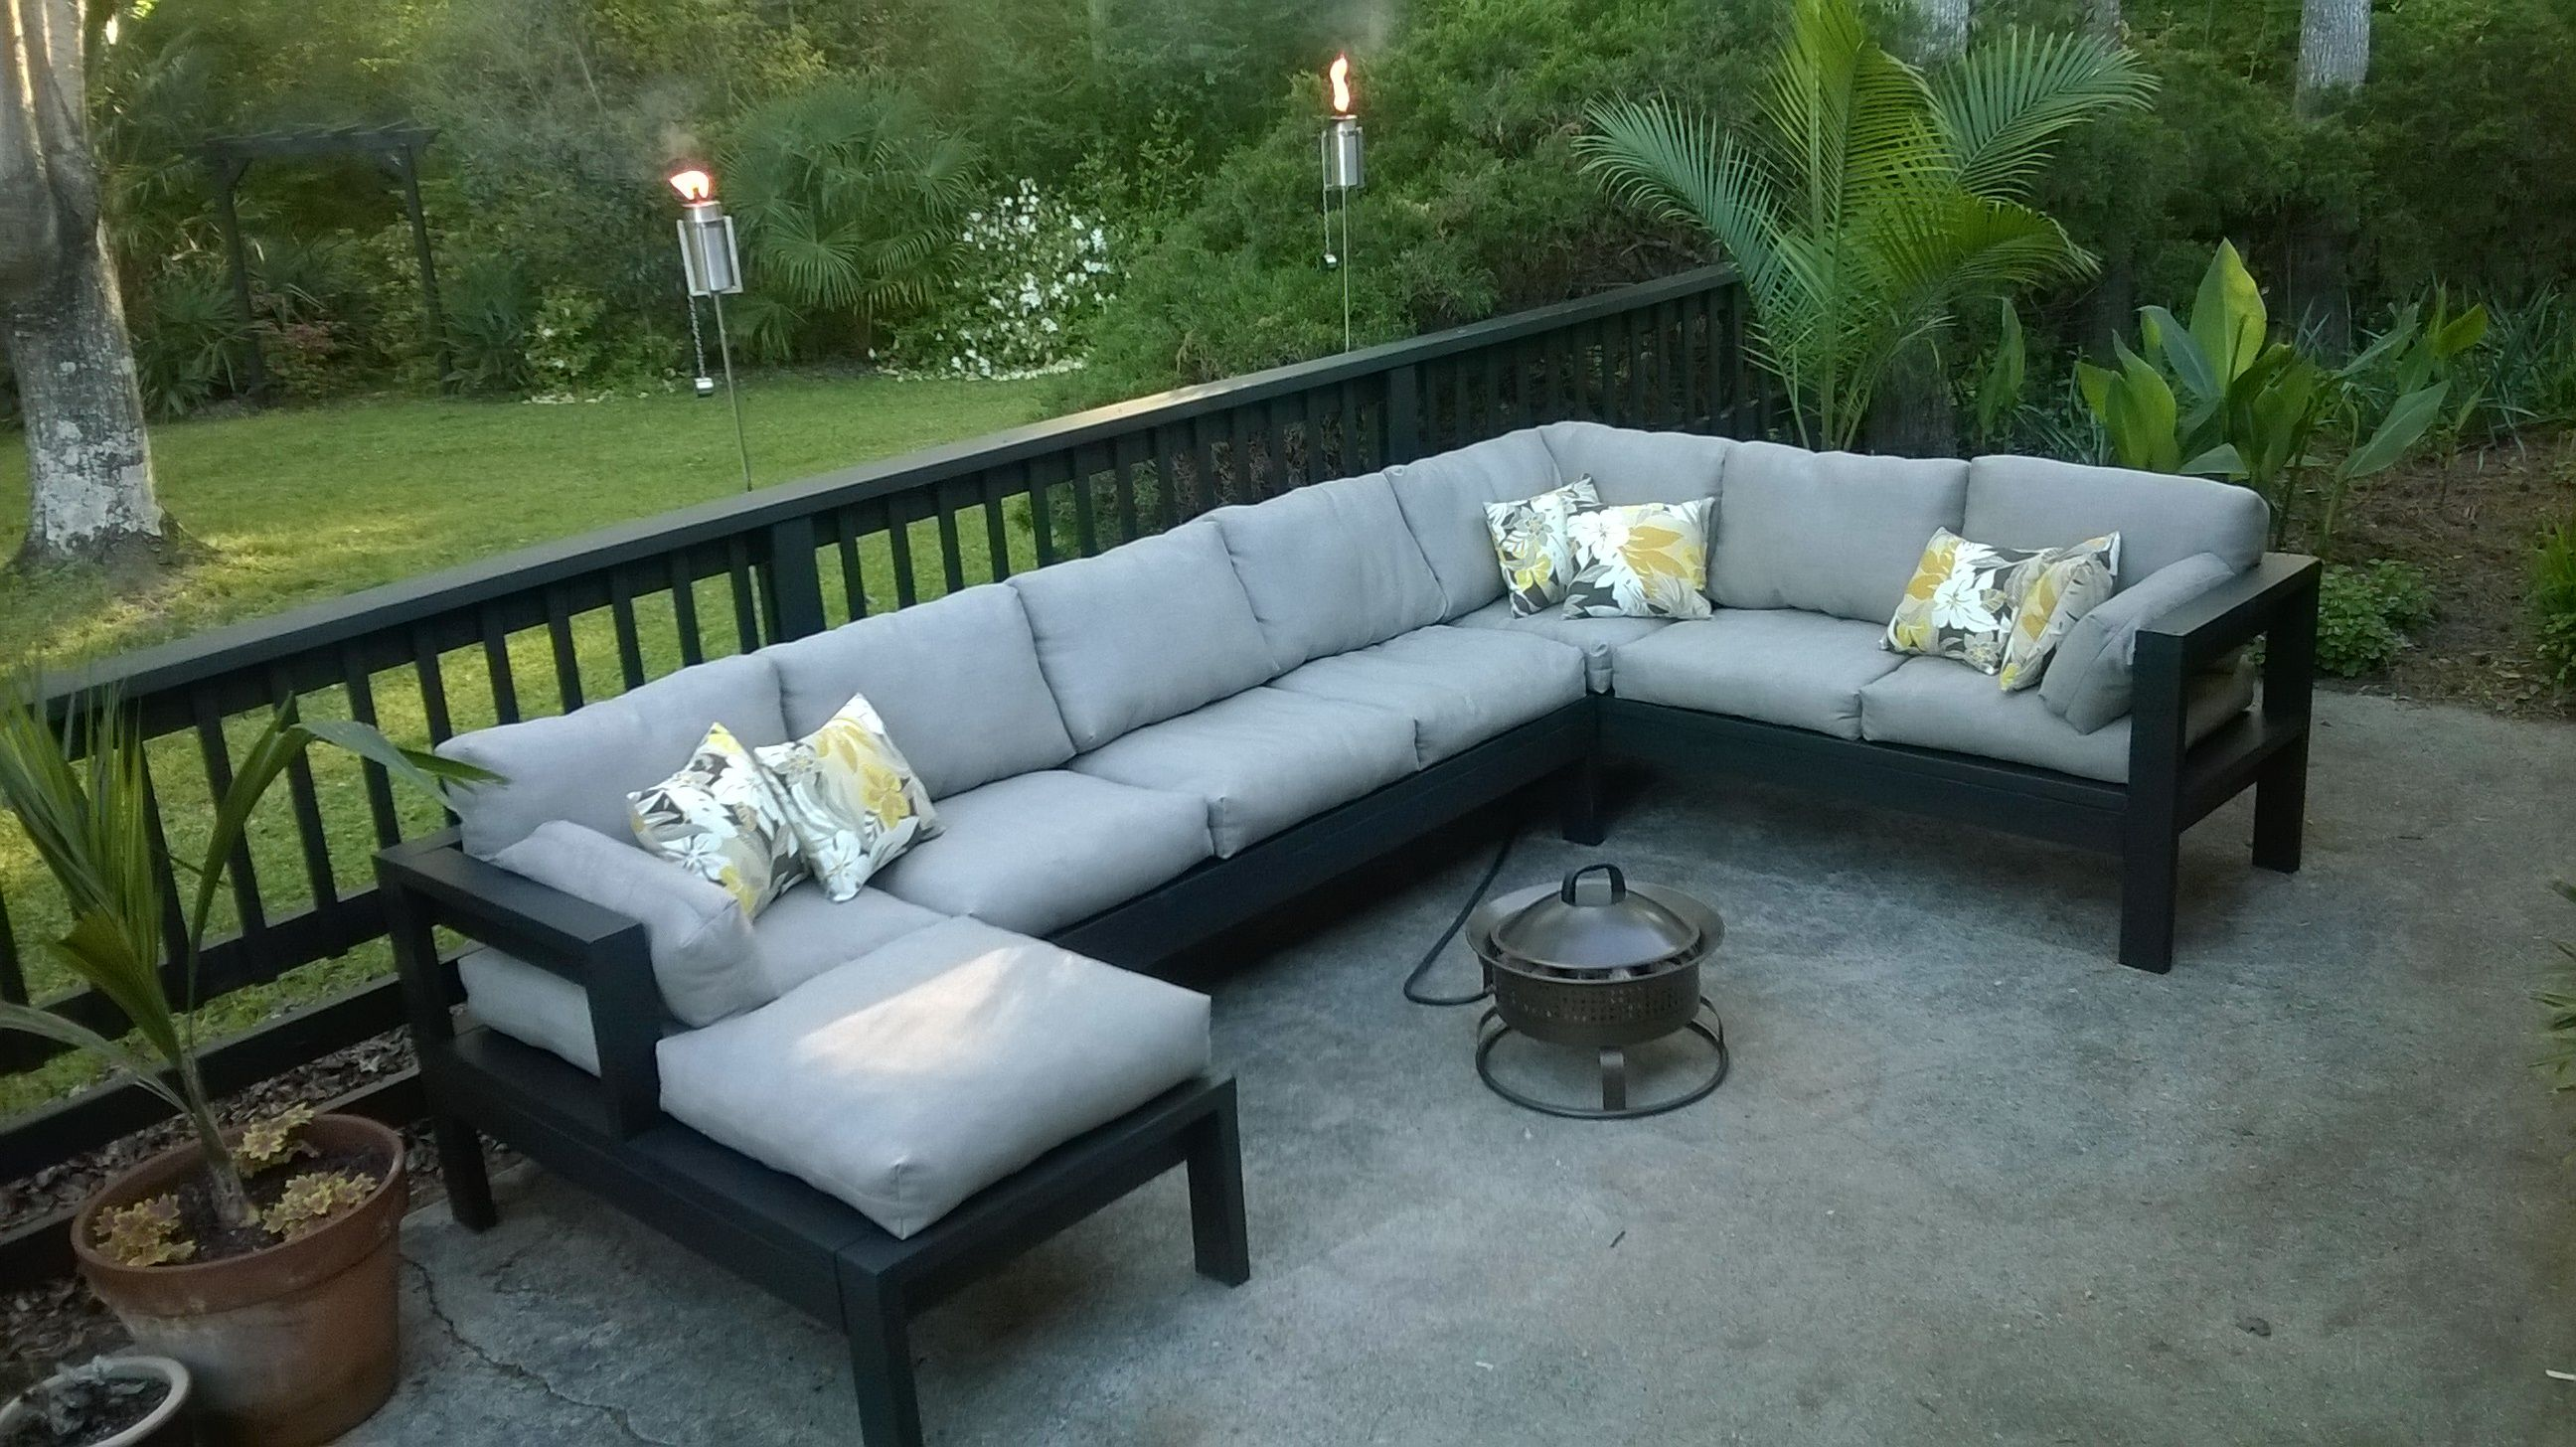 Outdoor sectional do it yourself home projects from ana white outdoor sectional do it yourself home projects from ana white solutioingenieria Images